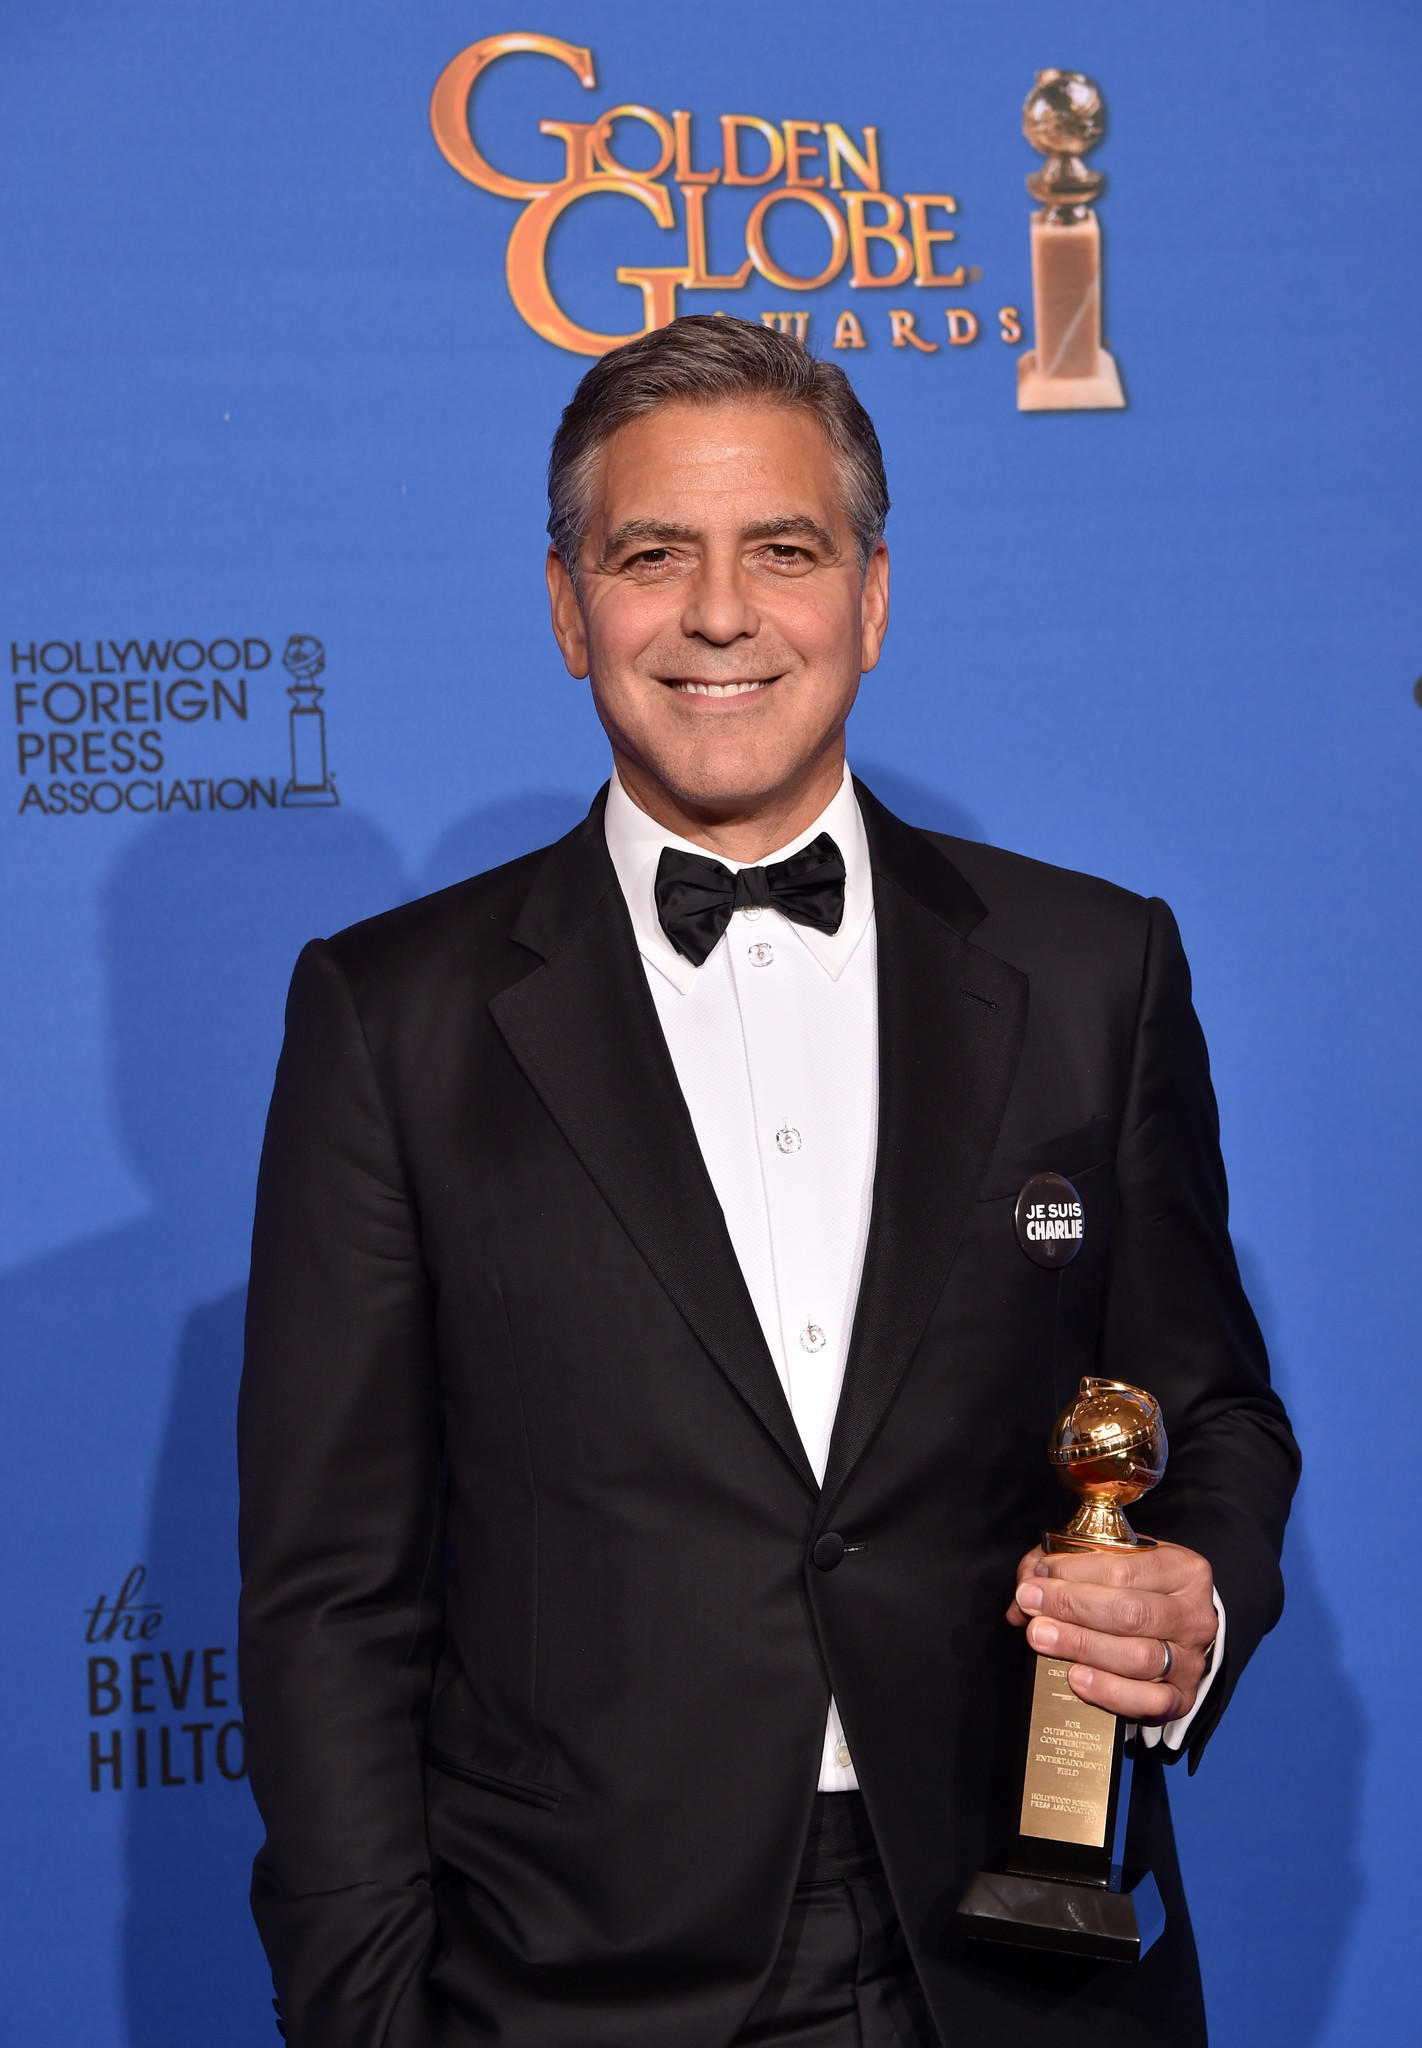 Backstage with george clooney